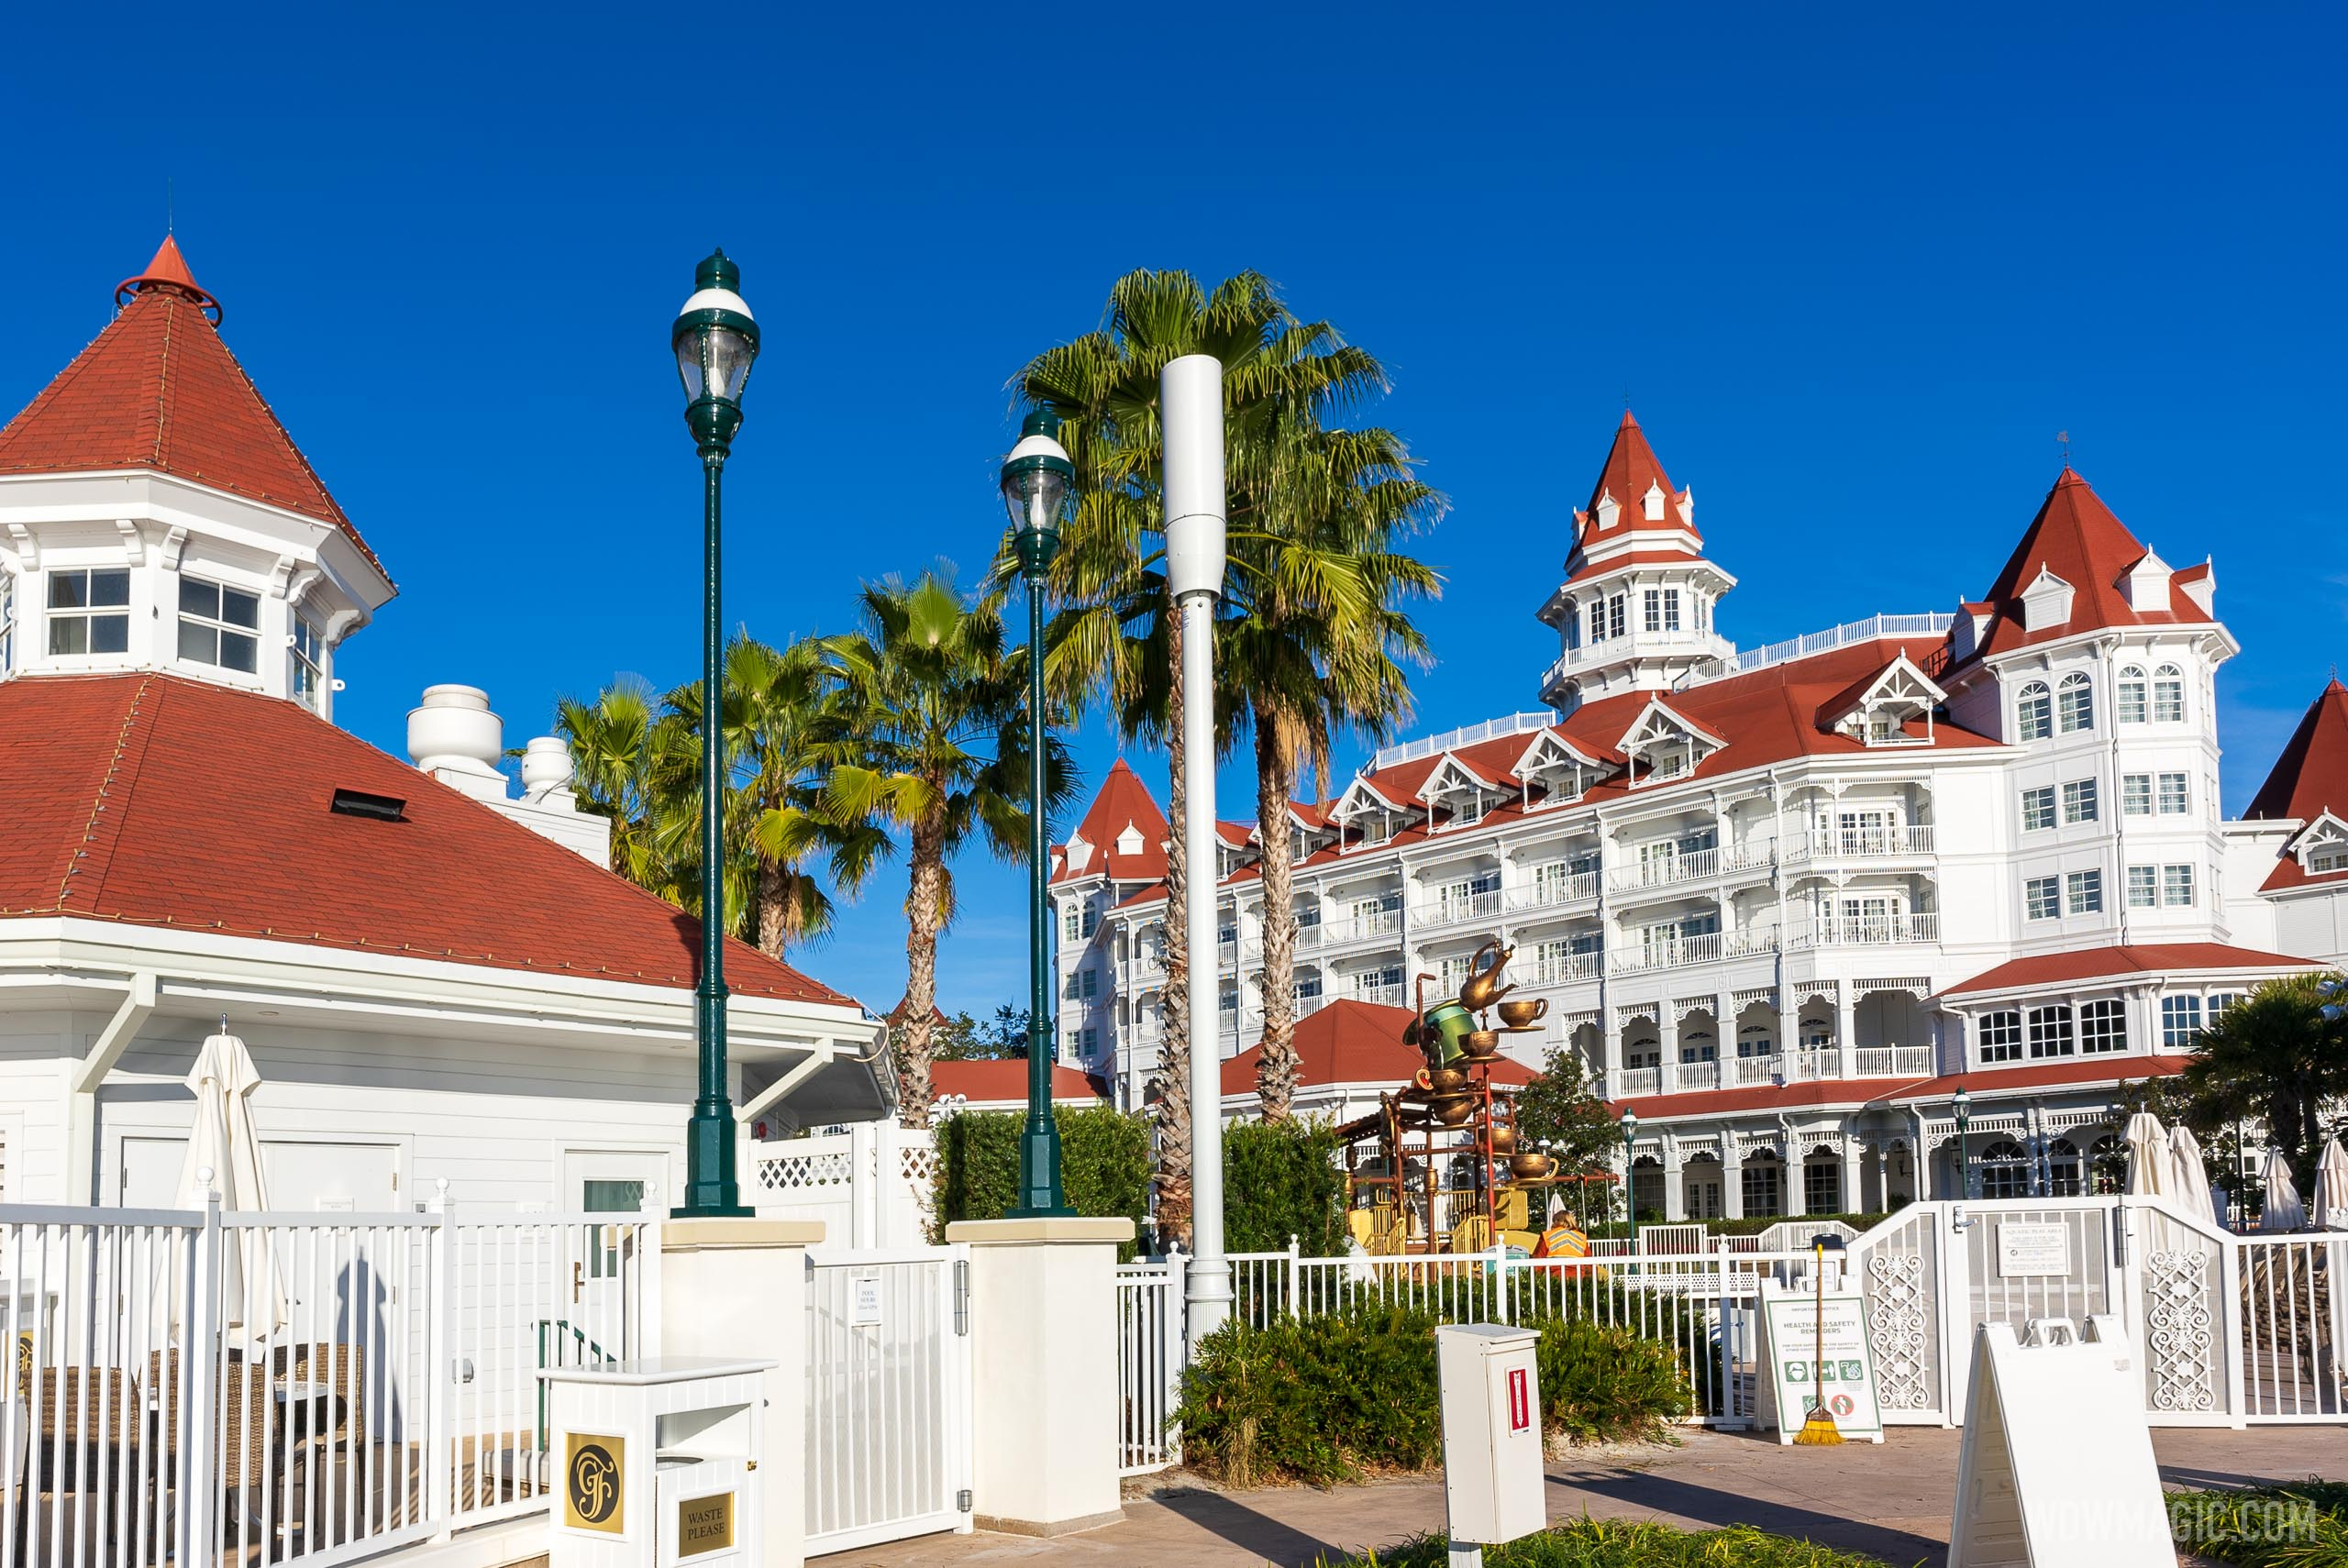 Disneys-Grand-Floridian-Resort-and-Spa_Full_40870.jpg